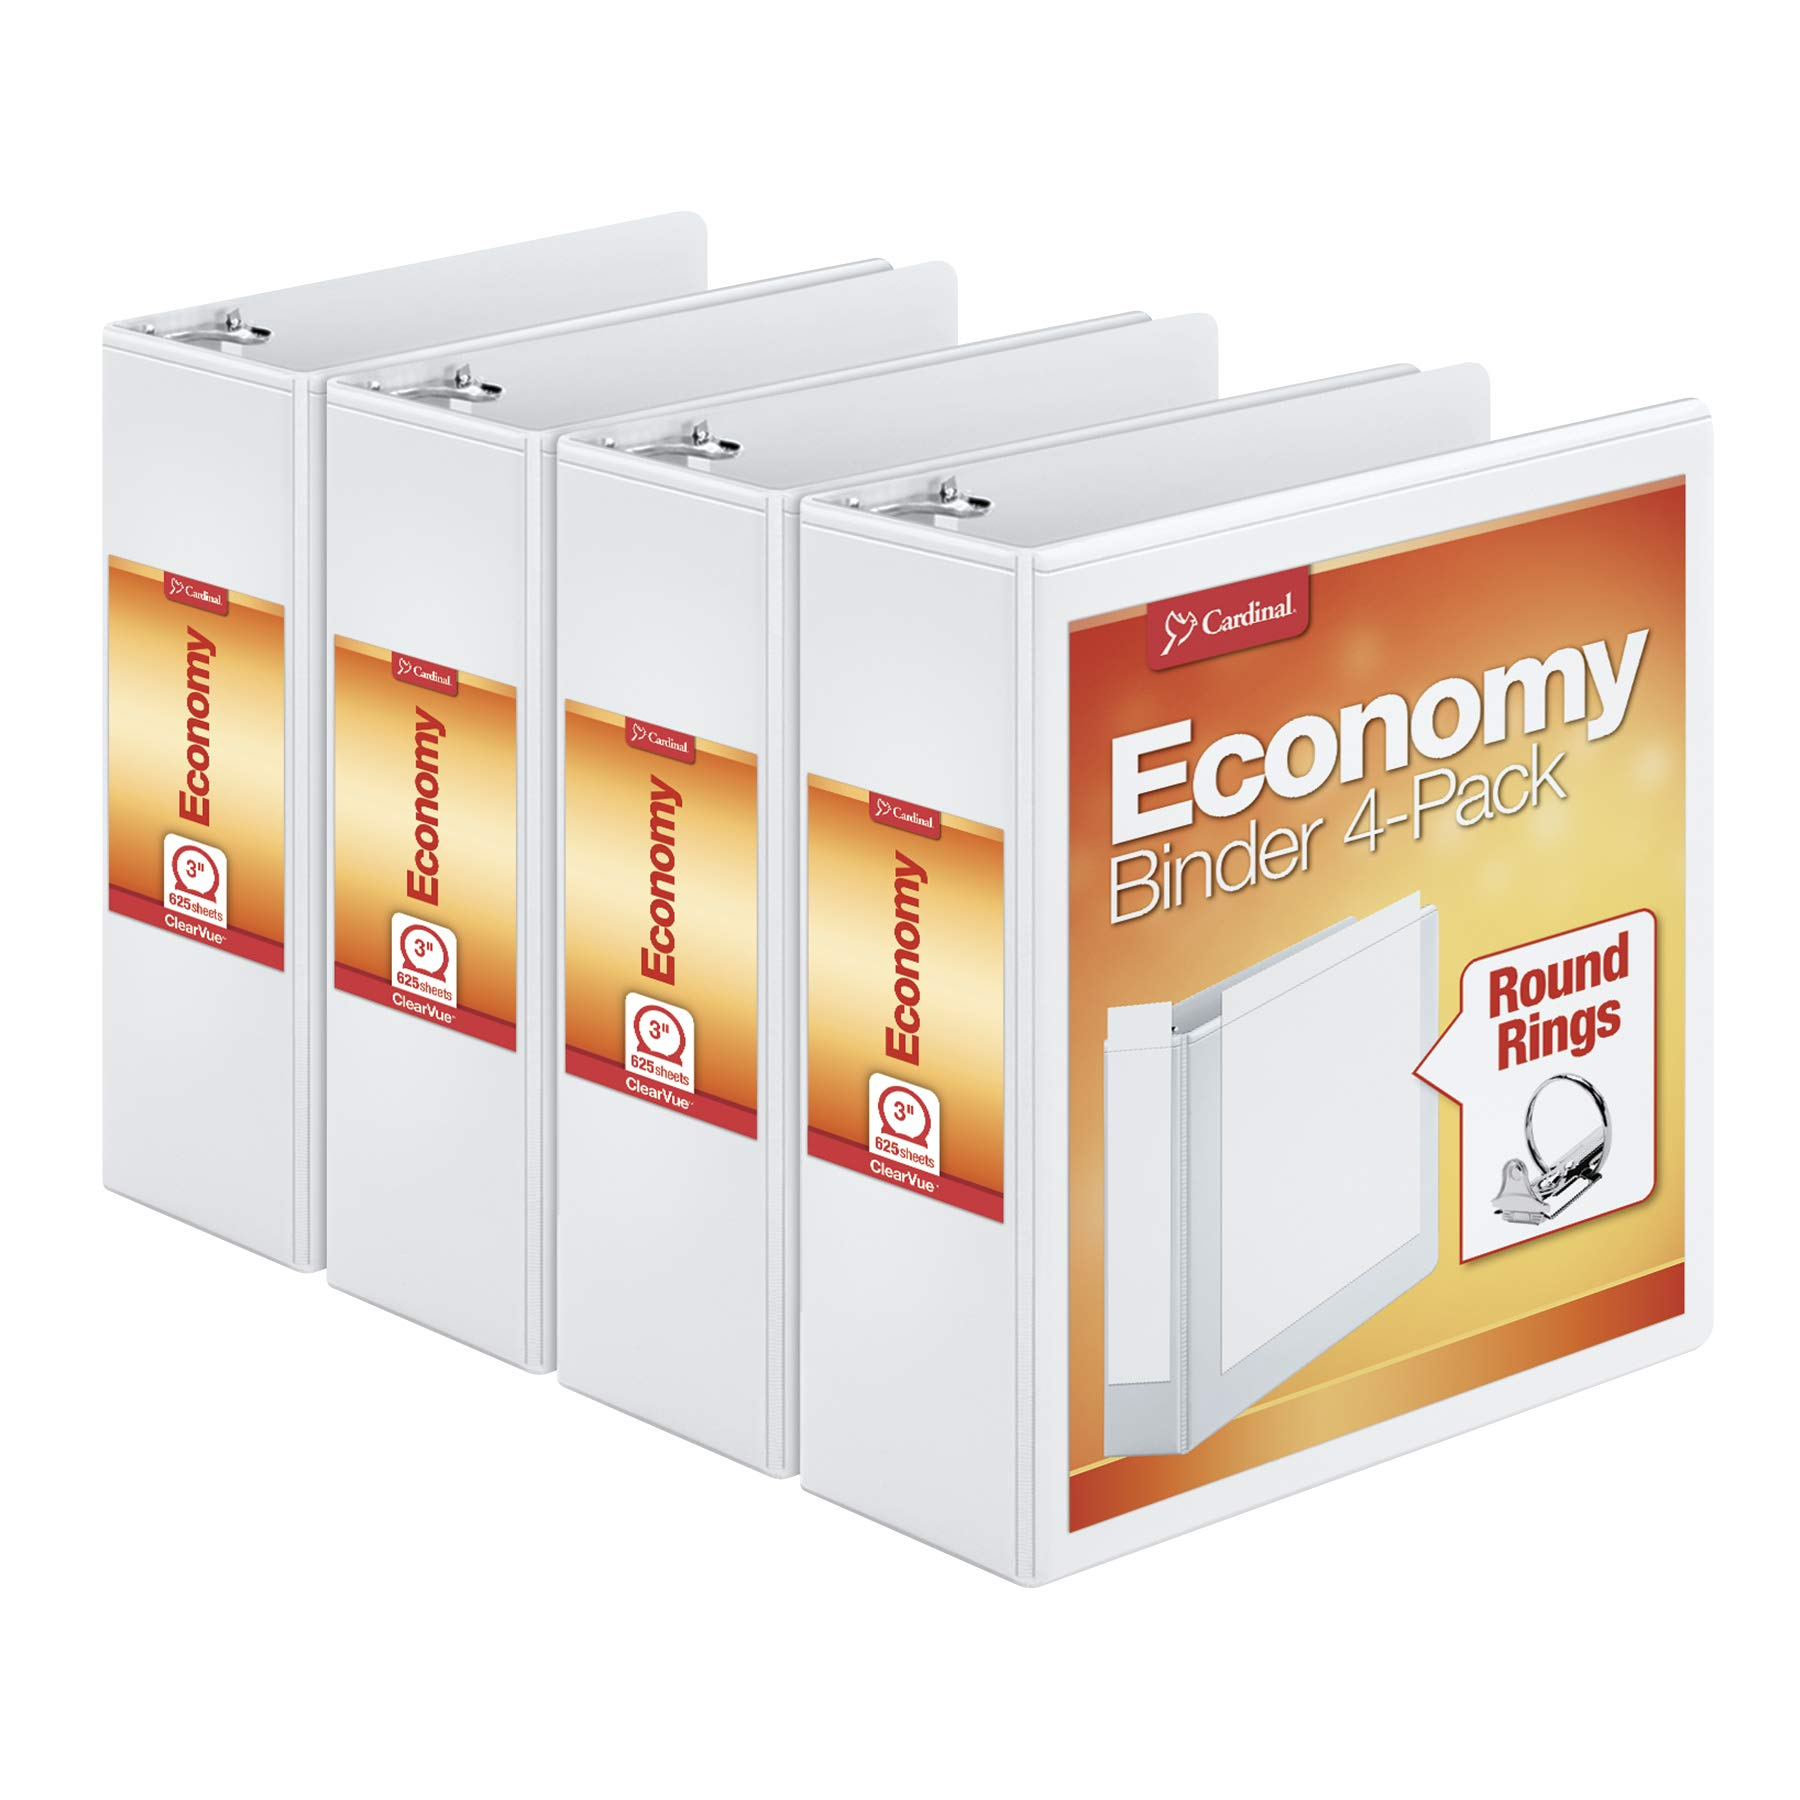 Cardinal 3'' Round-Ring Presentation View Binders, 3-Ring Binder, Holds 625 Sheets, Nonstick Poly Material, PVC-Free, White, 4-Pack (00430) by Cardinal